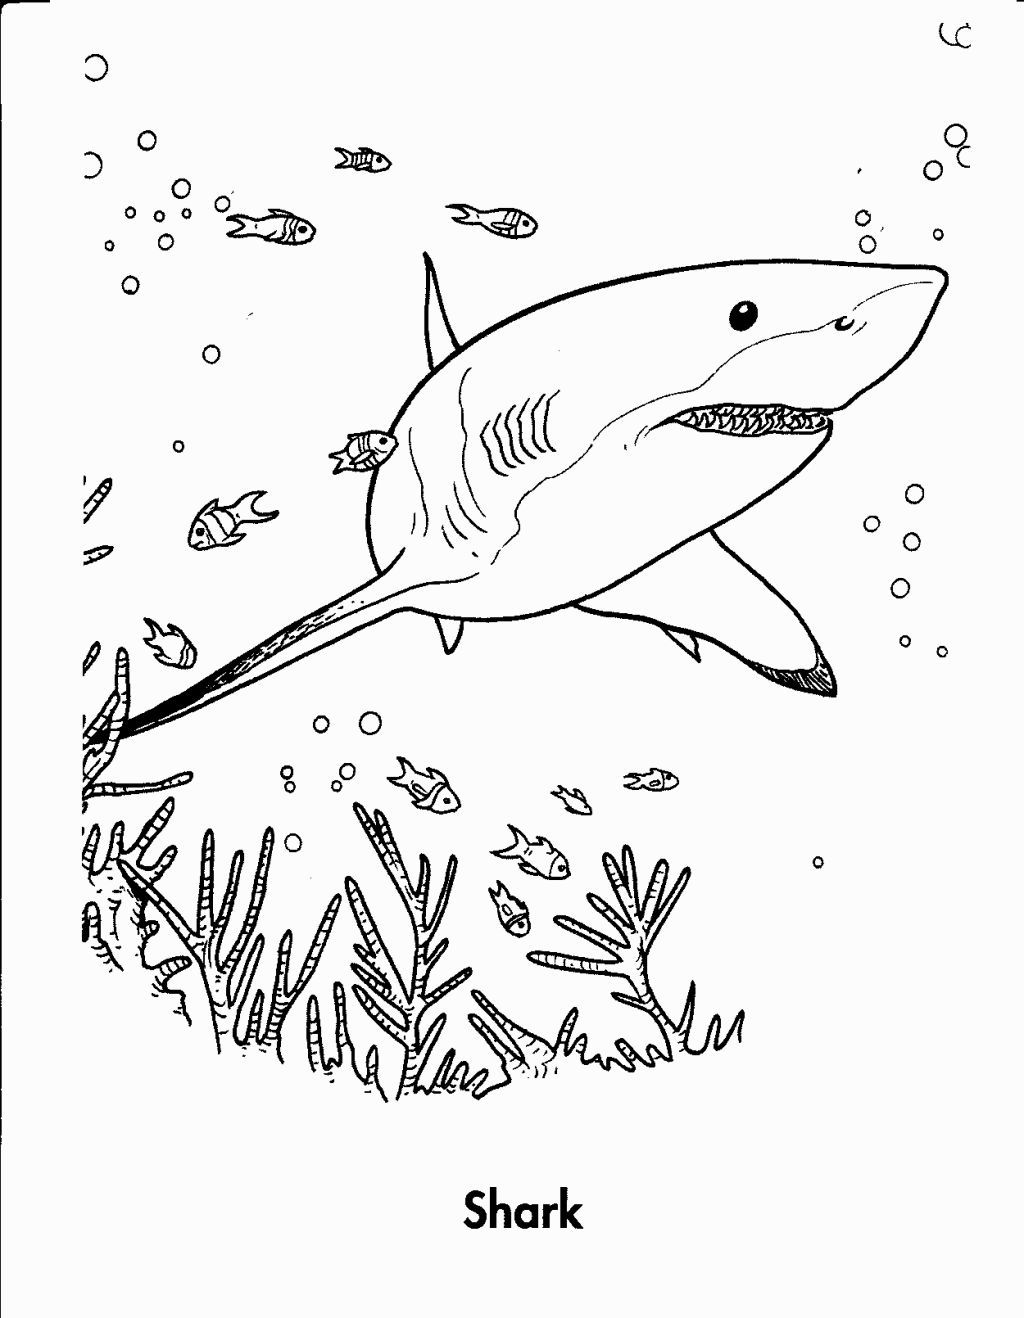 Pin By Alfin Parker On Hobbies In 2020 Shark Coloring Pages Free Coloring Pages Coloring Pages